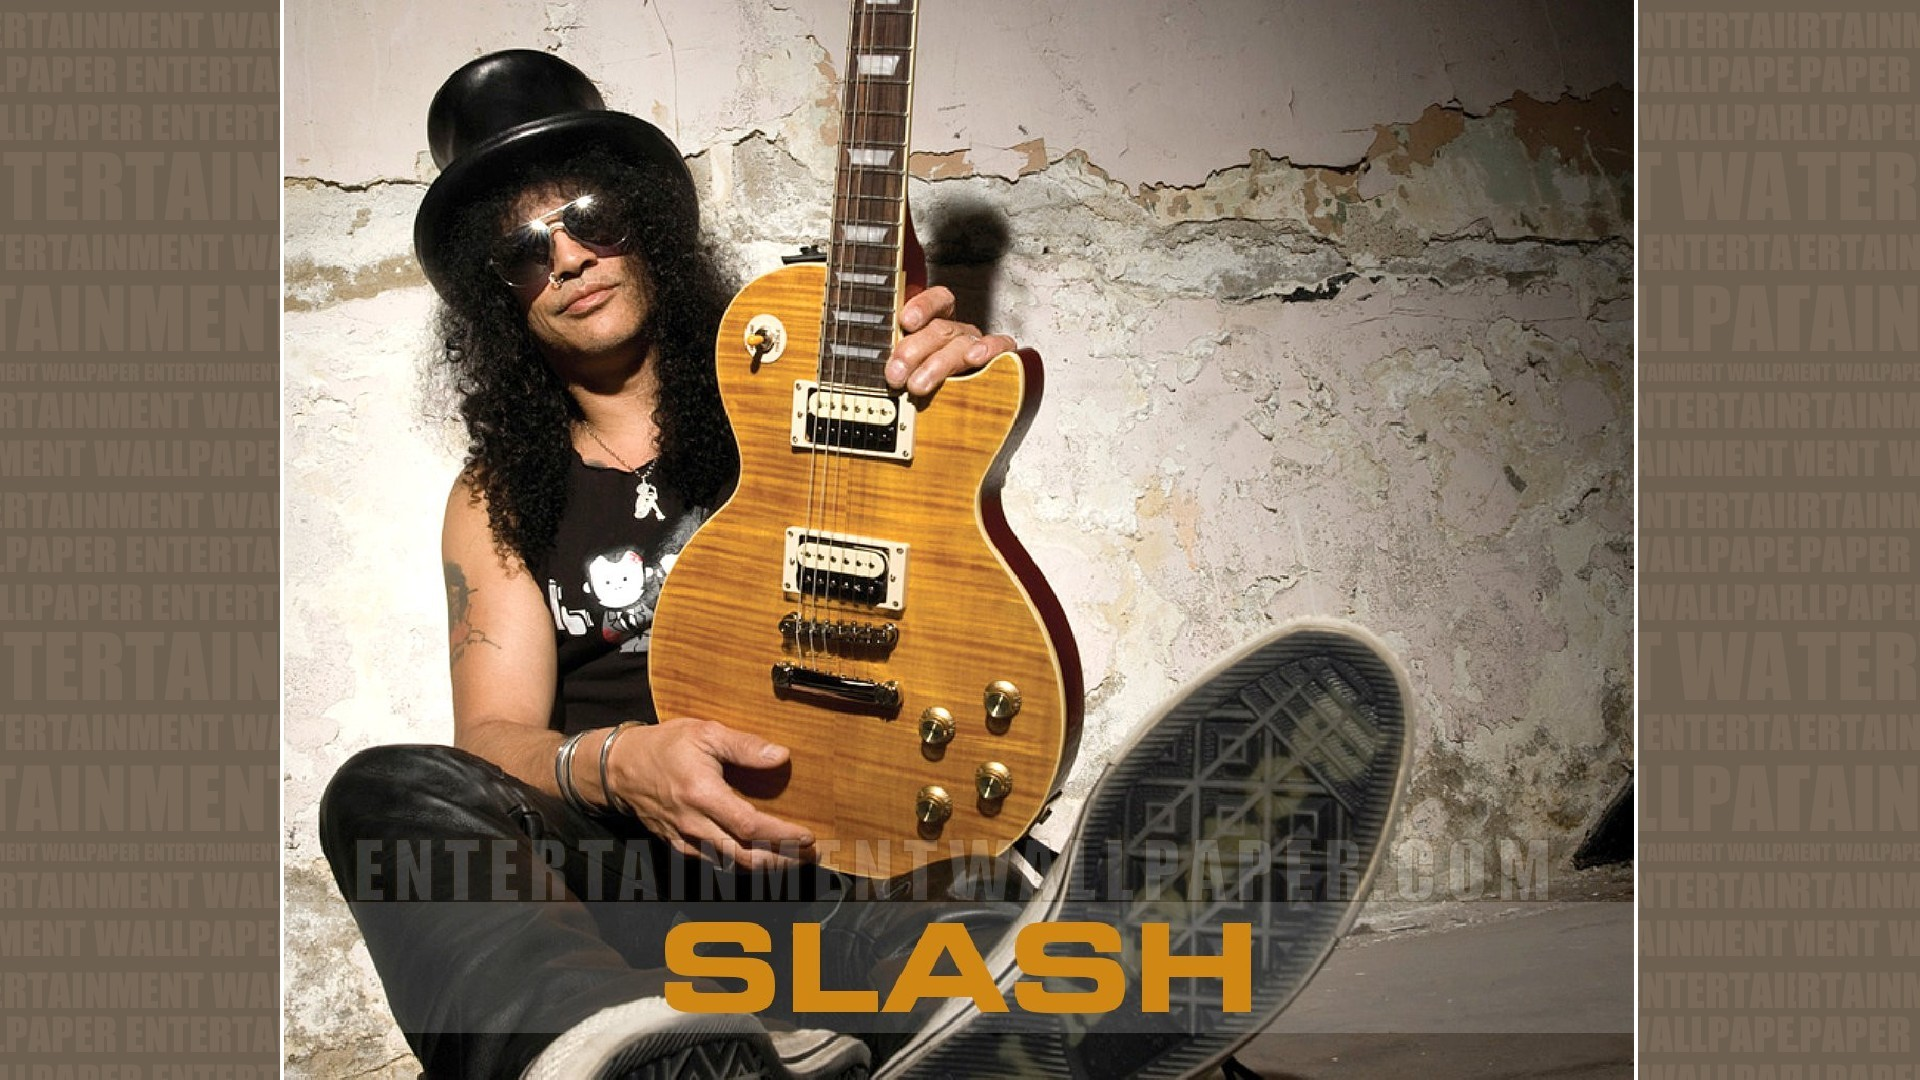 Slash Wallpaper – Original size, download now.